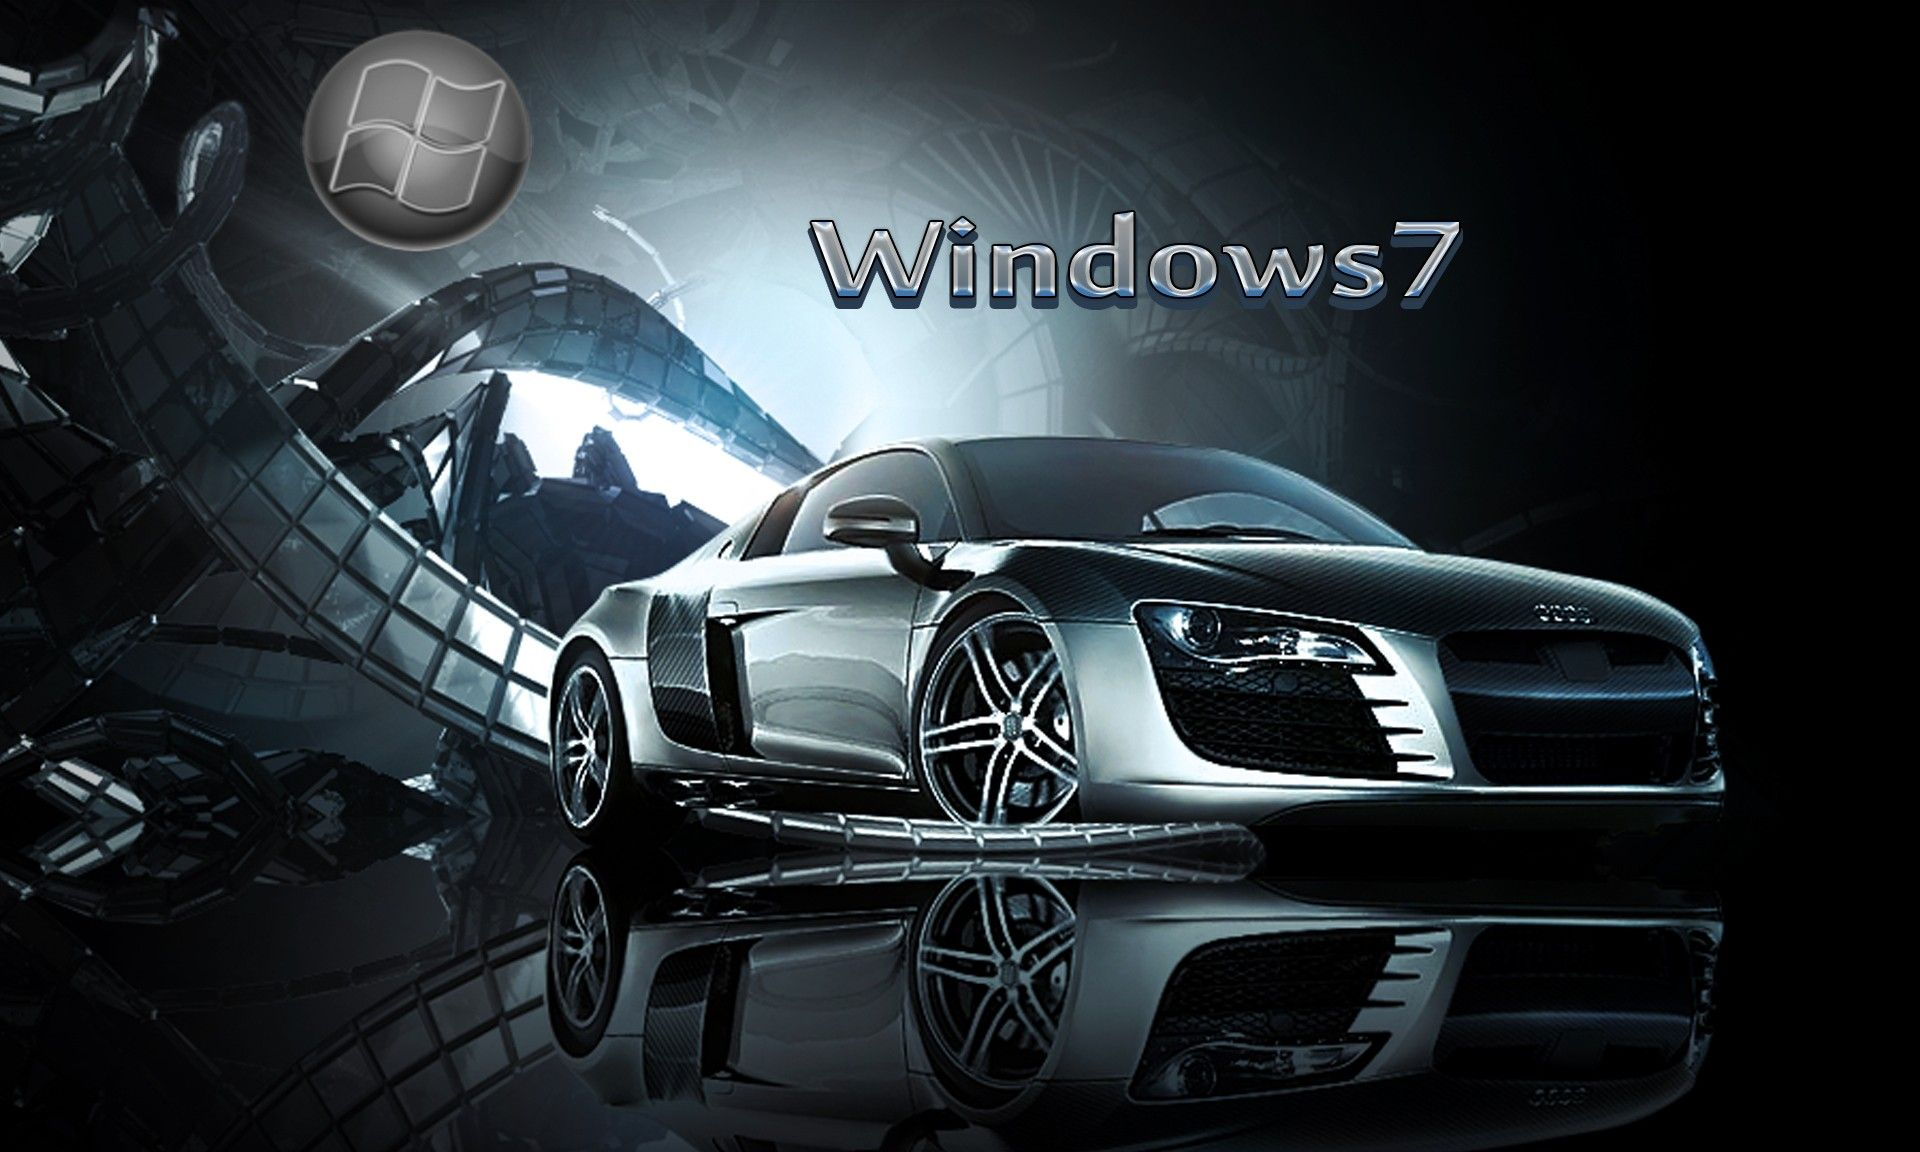 You can learn how to change and manage windows 7 themes by reading the post. Free Download Hd Car Wallpapers For Windows 7 Your Hd Wallpaper Wallpapers Carro Carros De Luxo Carros Sedan